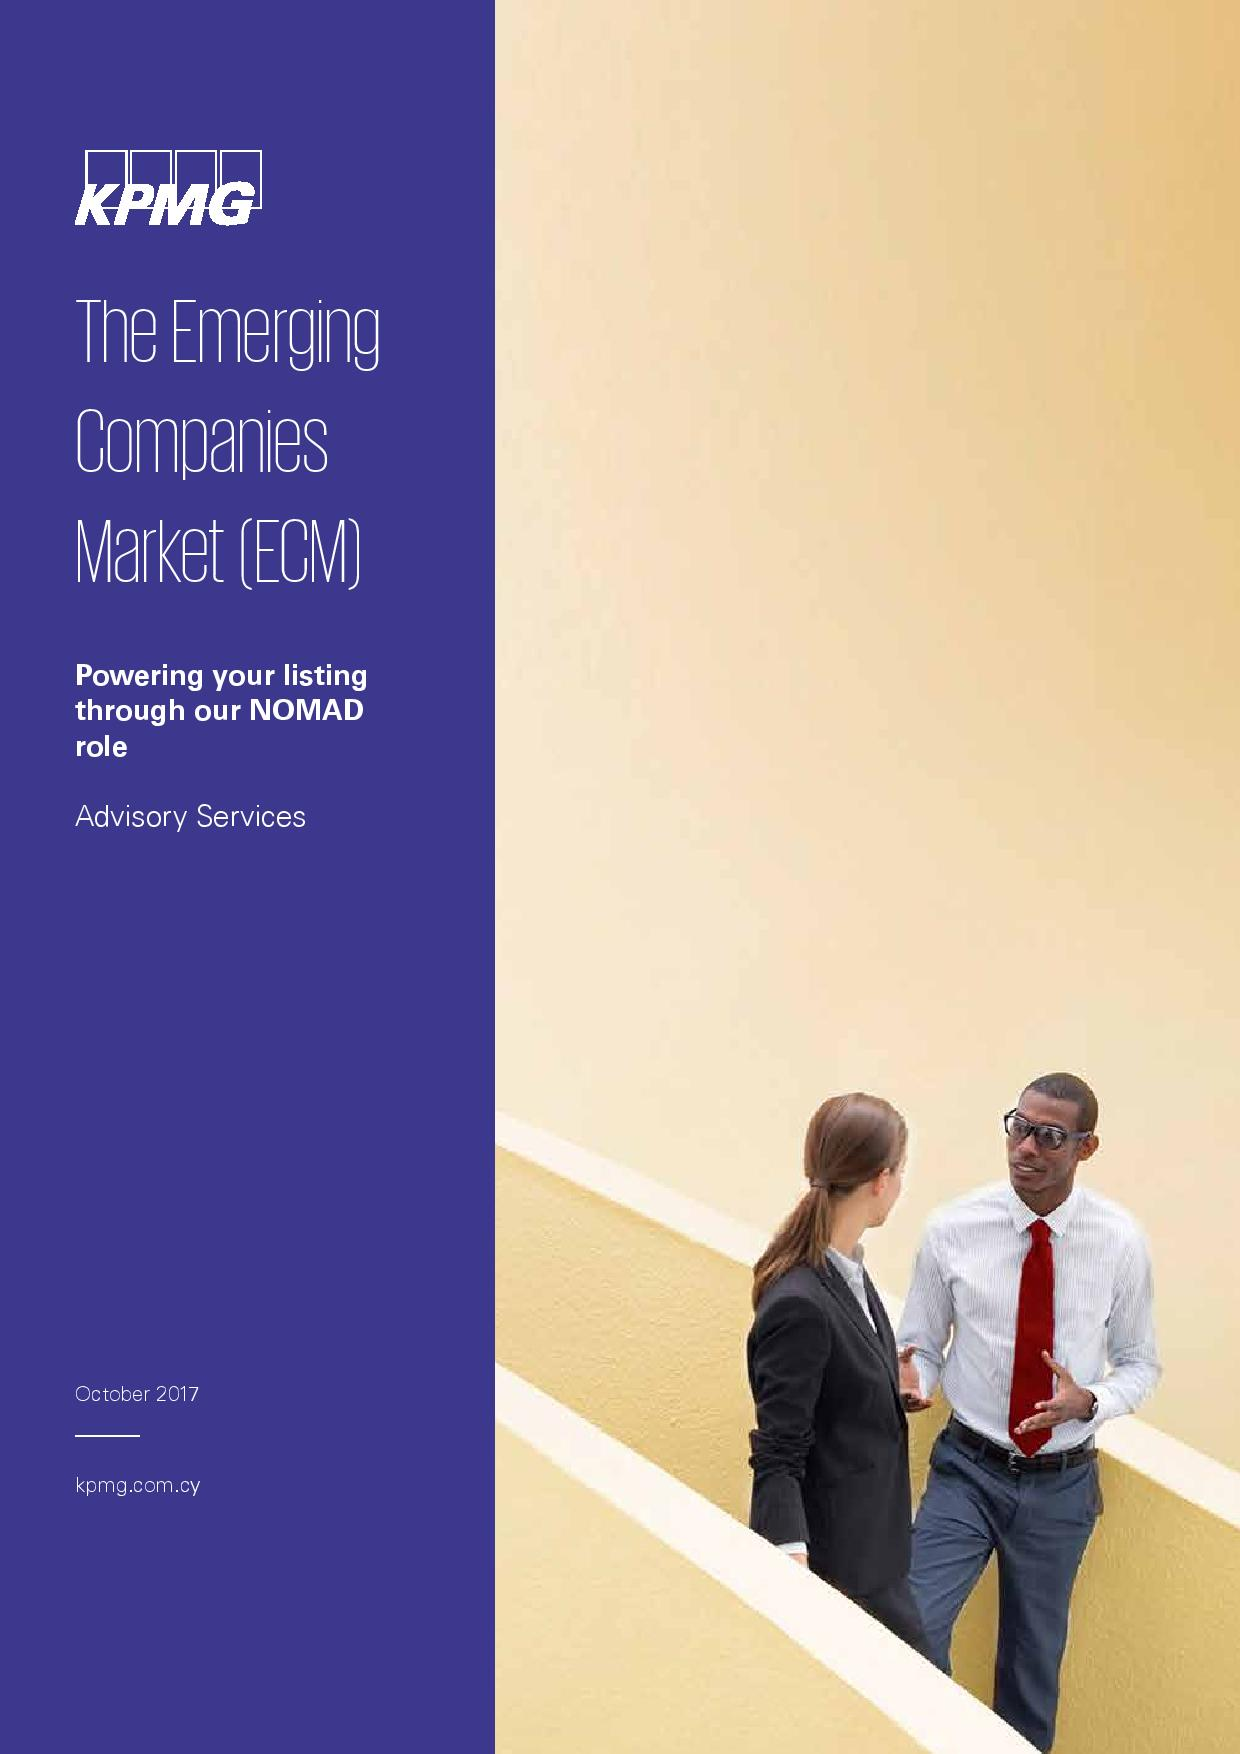 KPMG: The Emerging Companies Market (ECM)